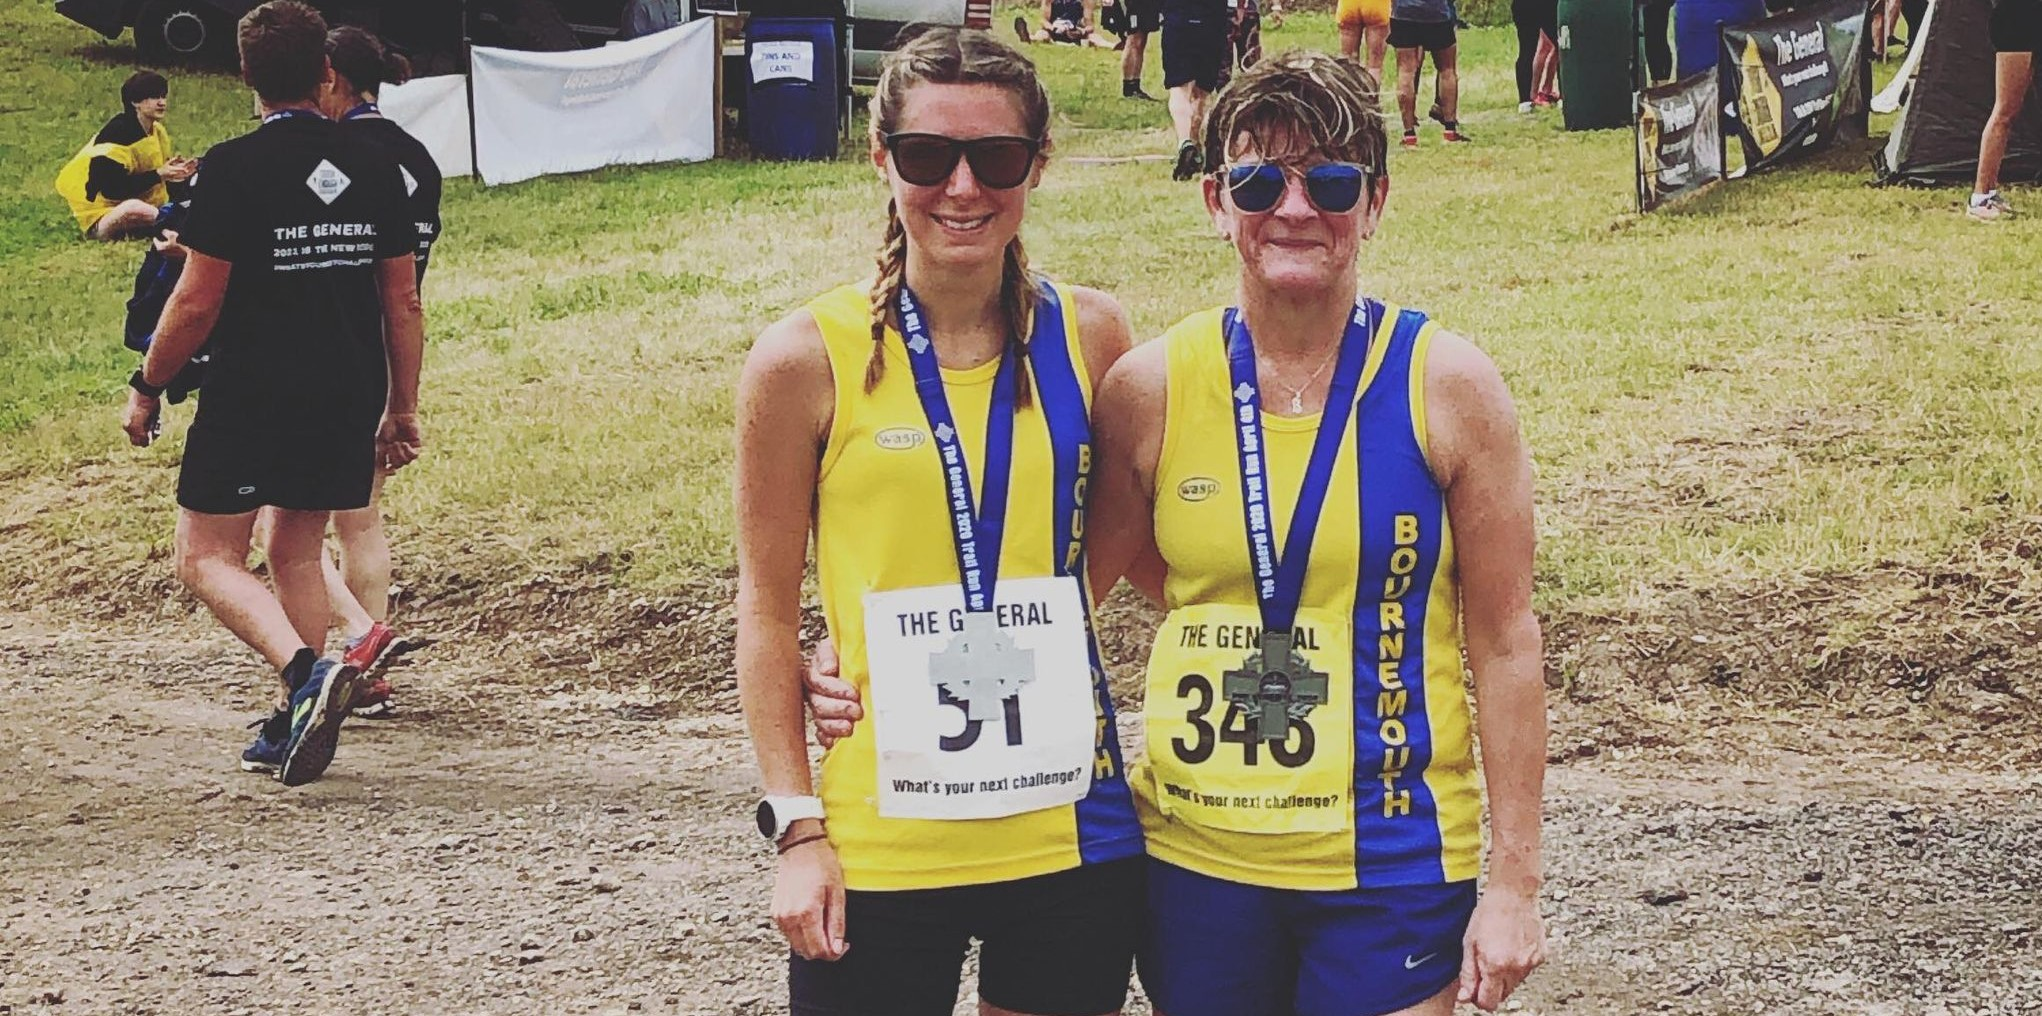 Tamzin and Lou tackle The General 10k Trail Run